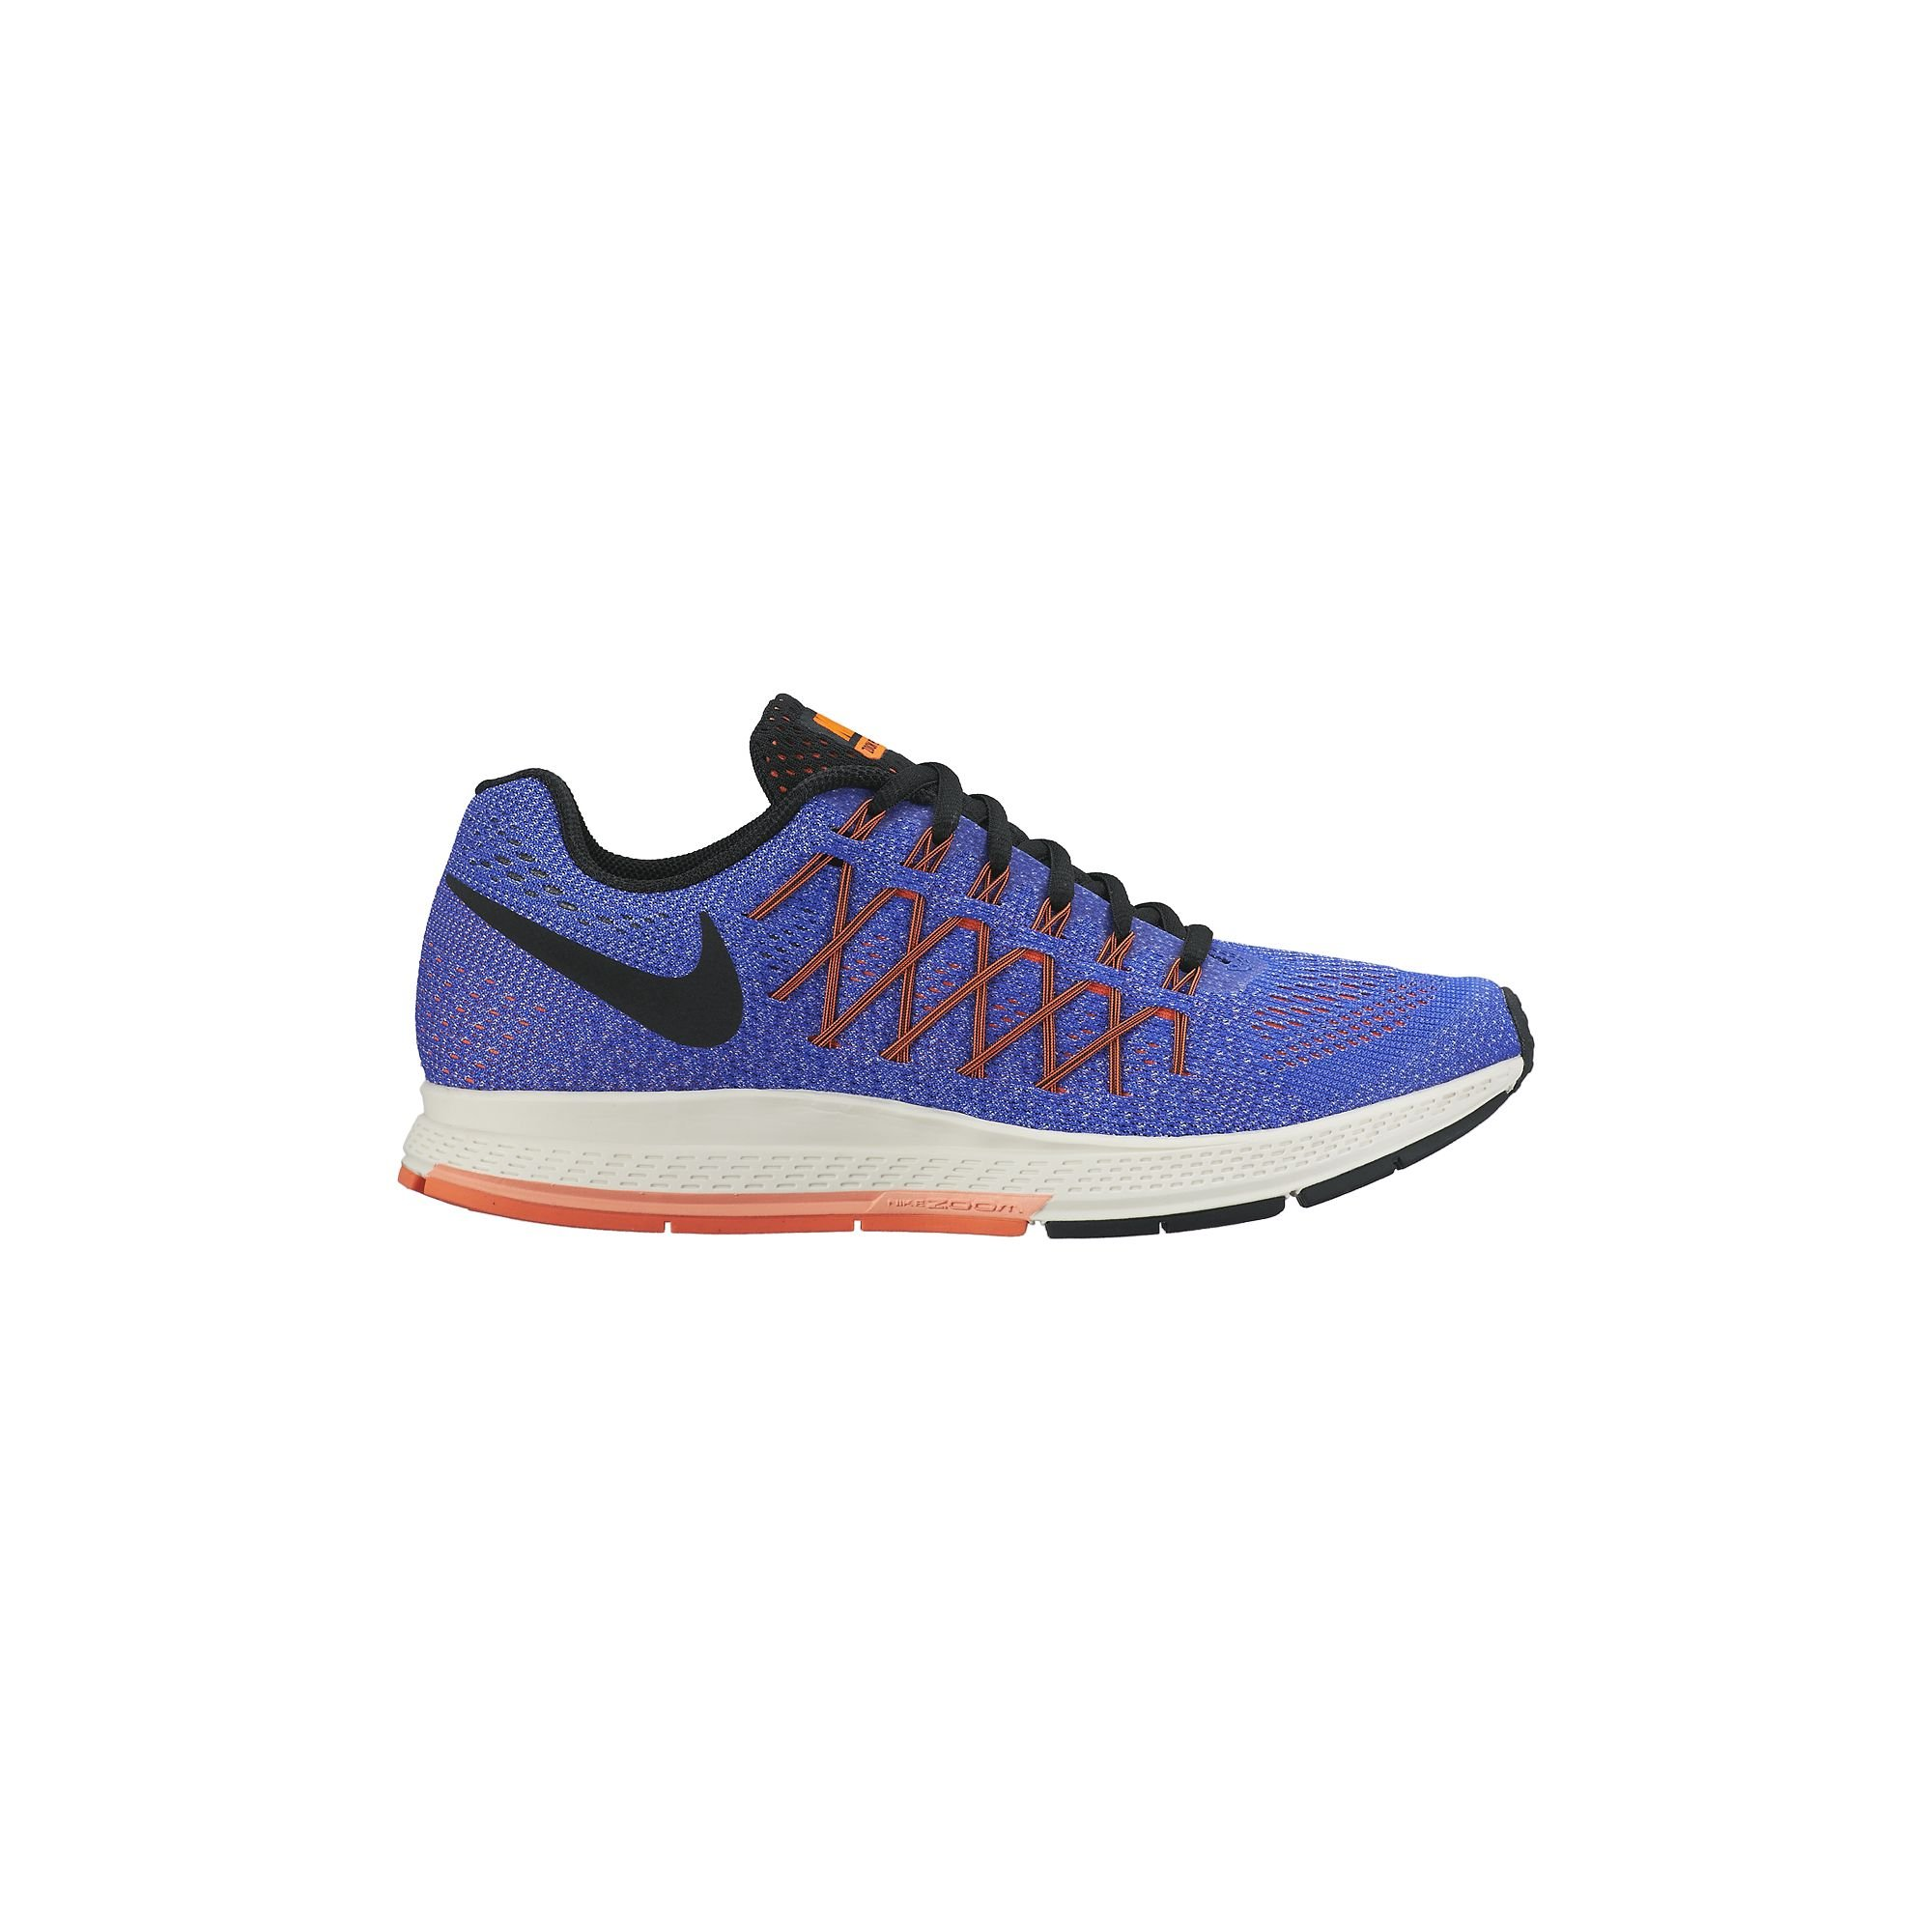 5230353a90eb0 Galleon - Nike Womens Wmns Air Zoom Pegasus 32